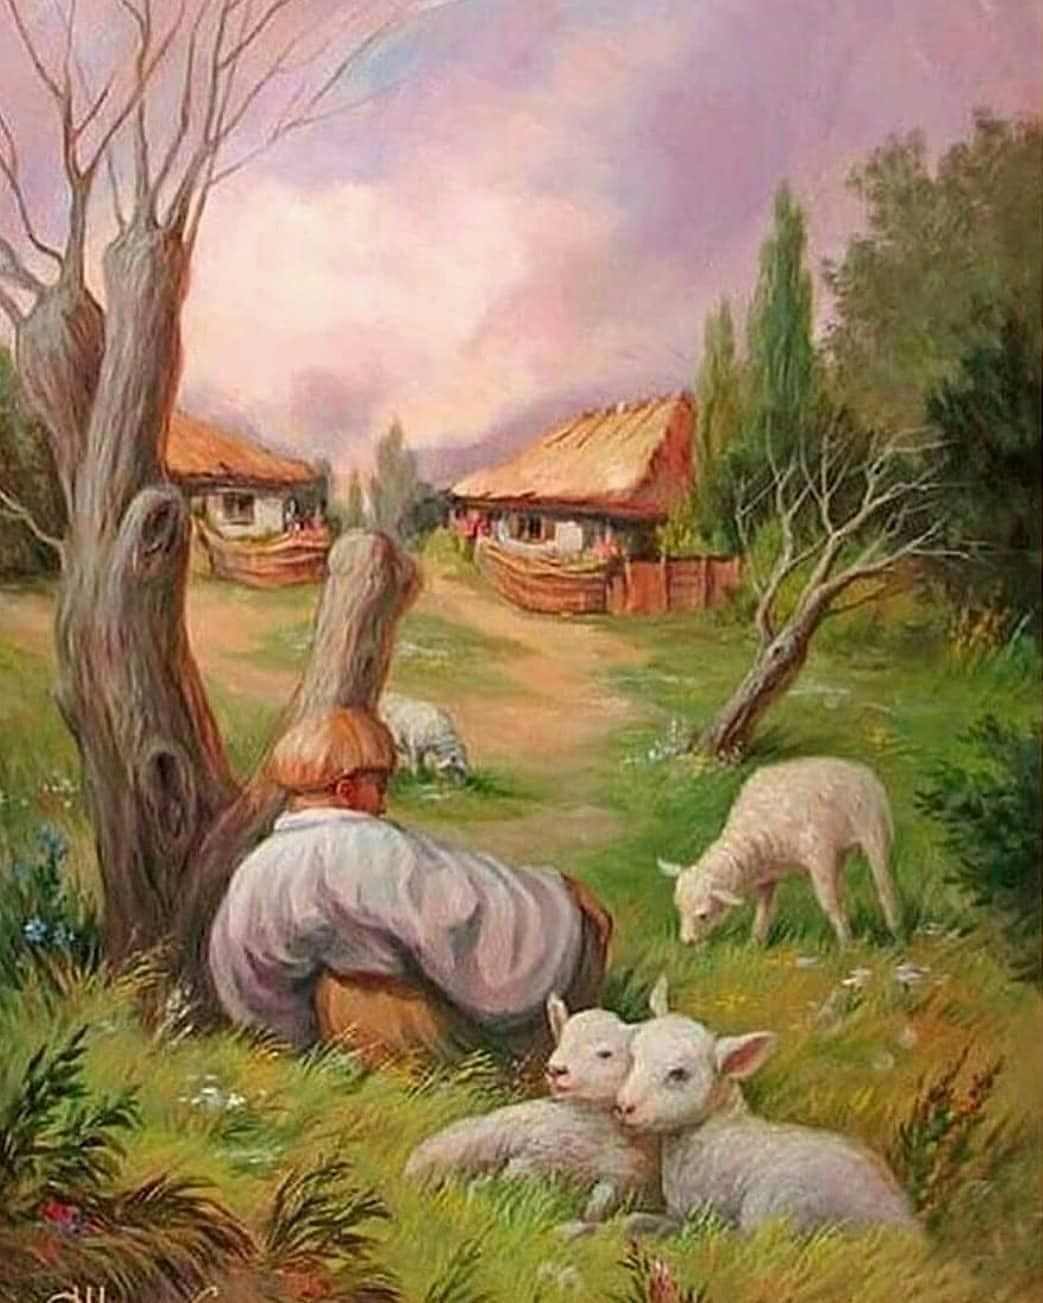 Surreal Paintings Follow  art dailydose for more art and use our hashtag   art dailydose for a chance to be featured! Art by Oleg Shuplyak . d78c60b3484